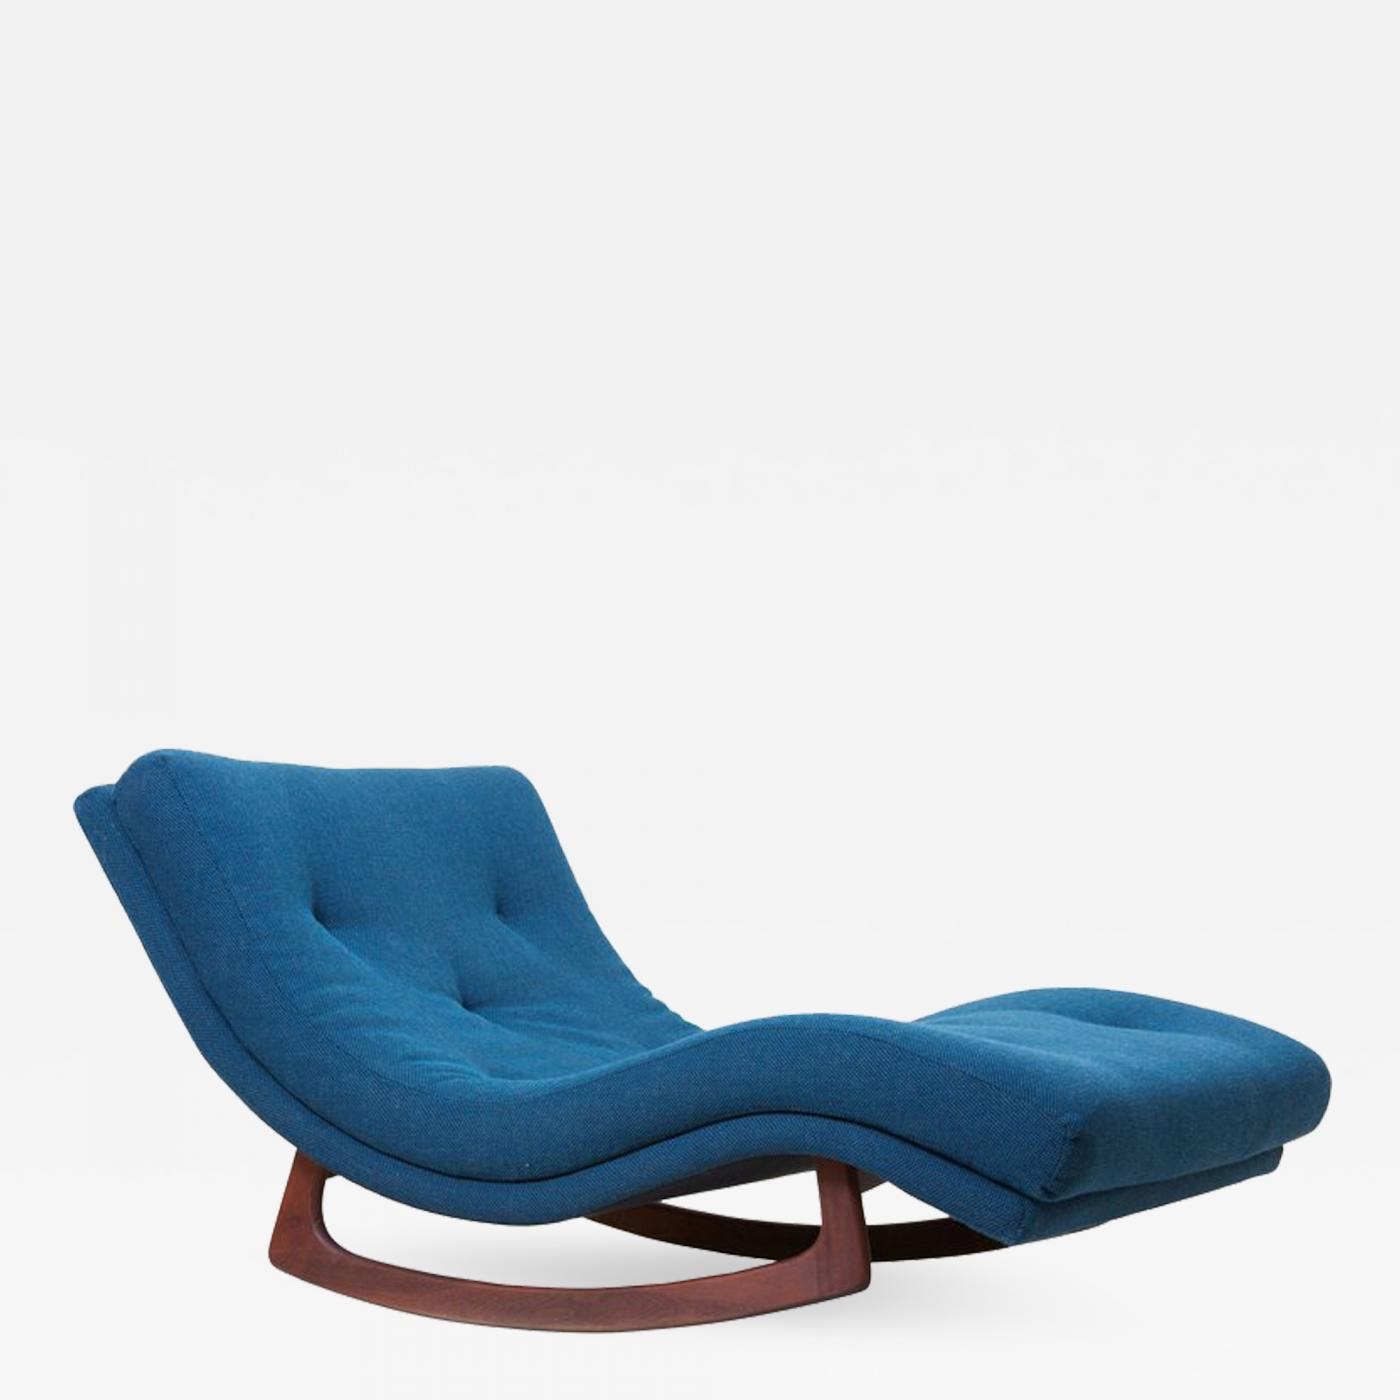 adrian pearsall rocking chair parson covers target signed chaise in kvadrat fabric